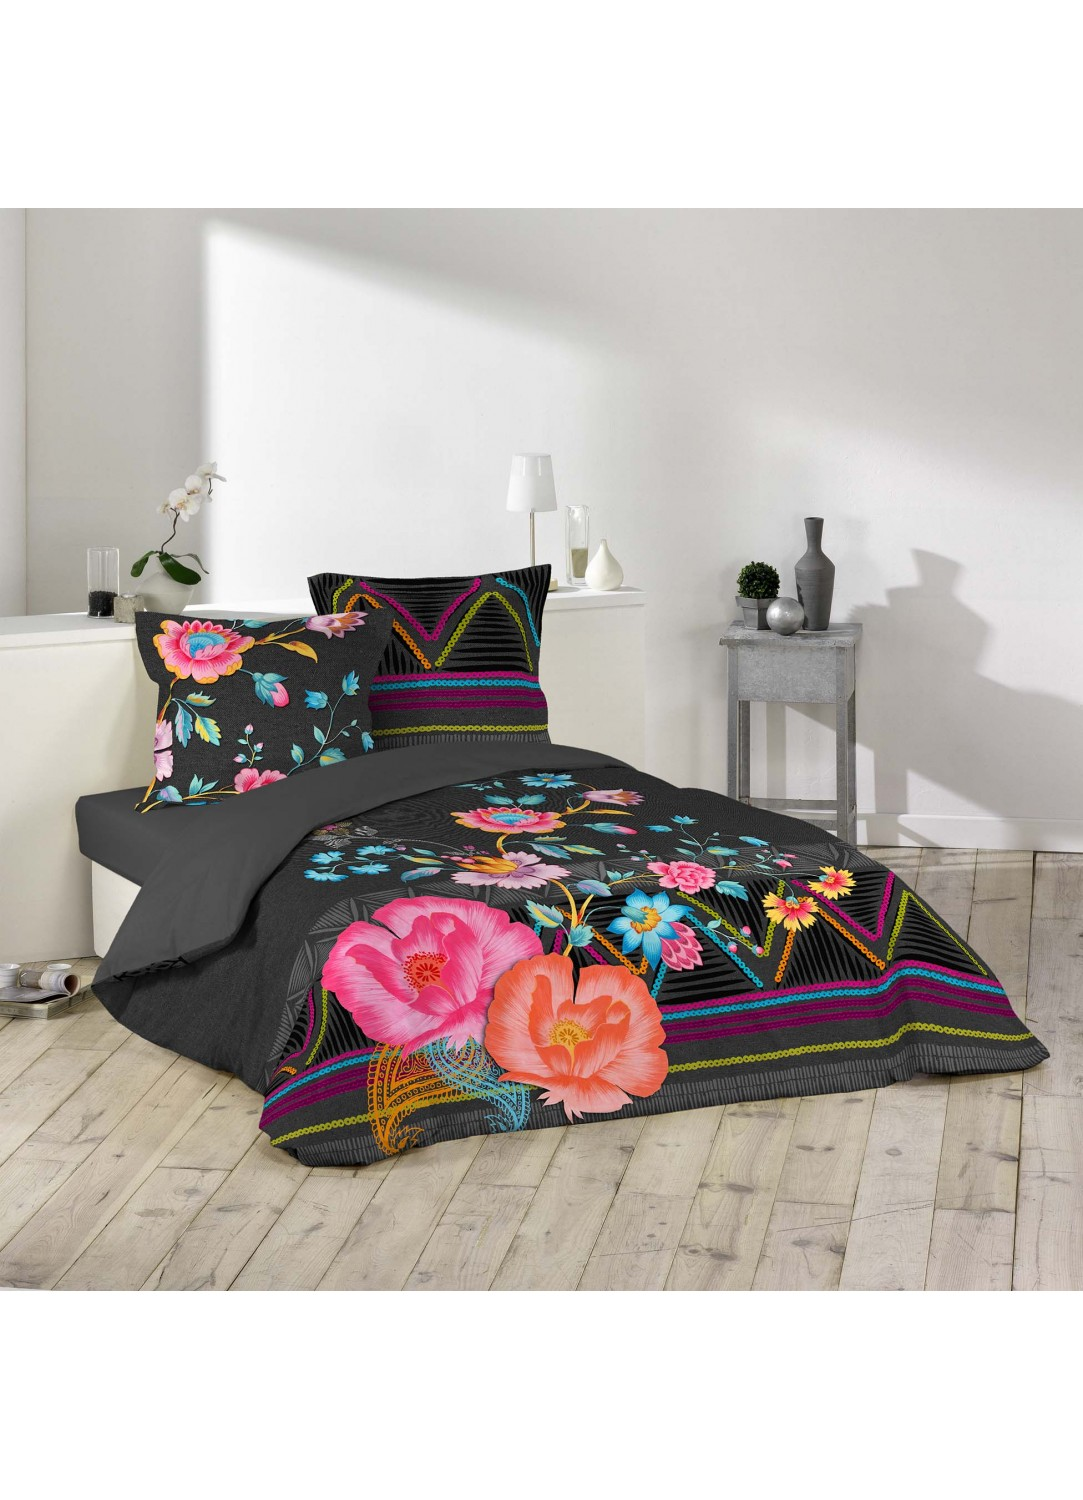 parure de lit imprim e boh me multicolors homemaison. Black Bedroom Furniture Sets. Home Design Ideas